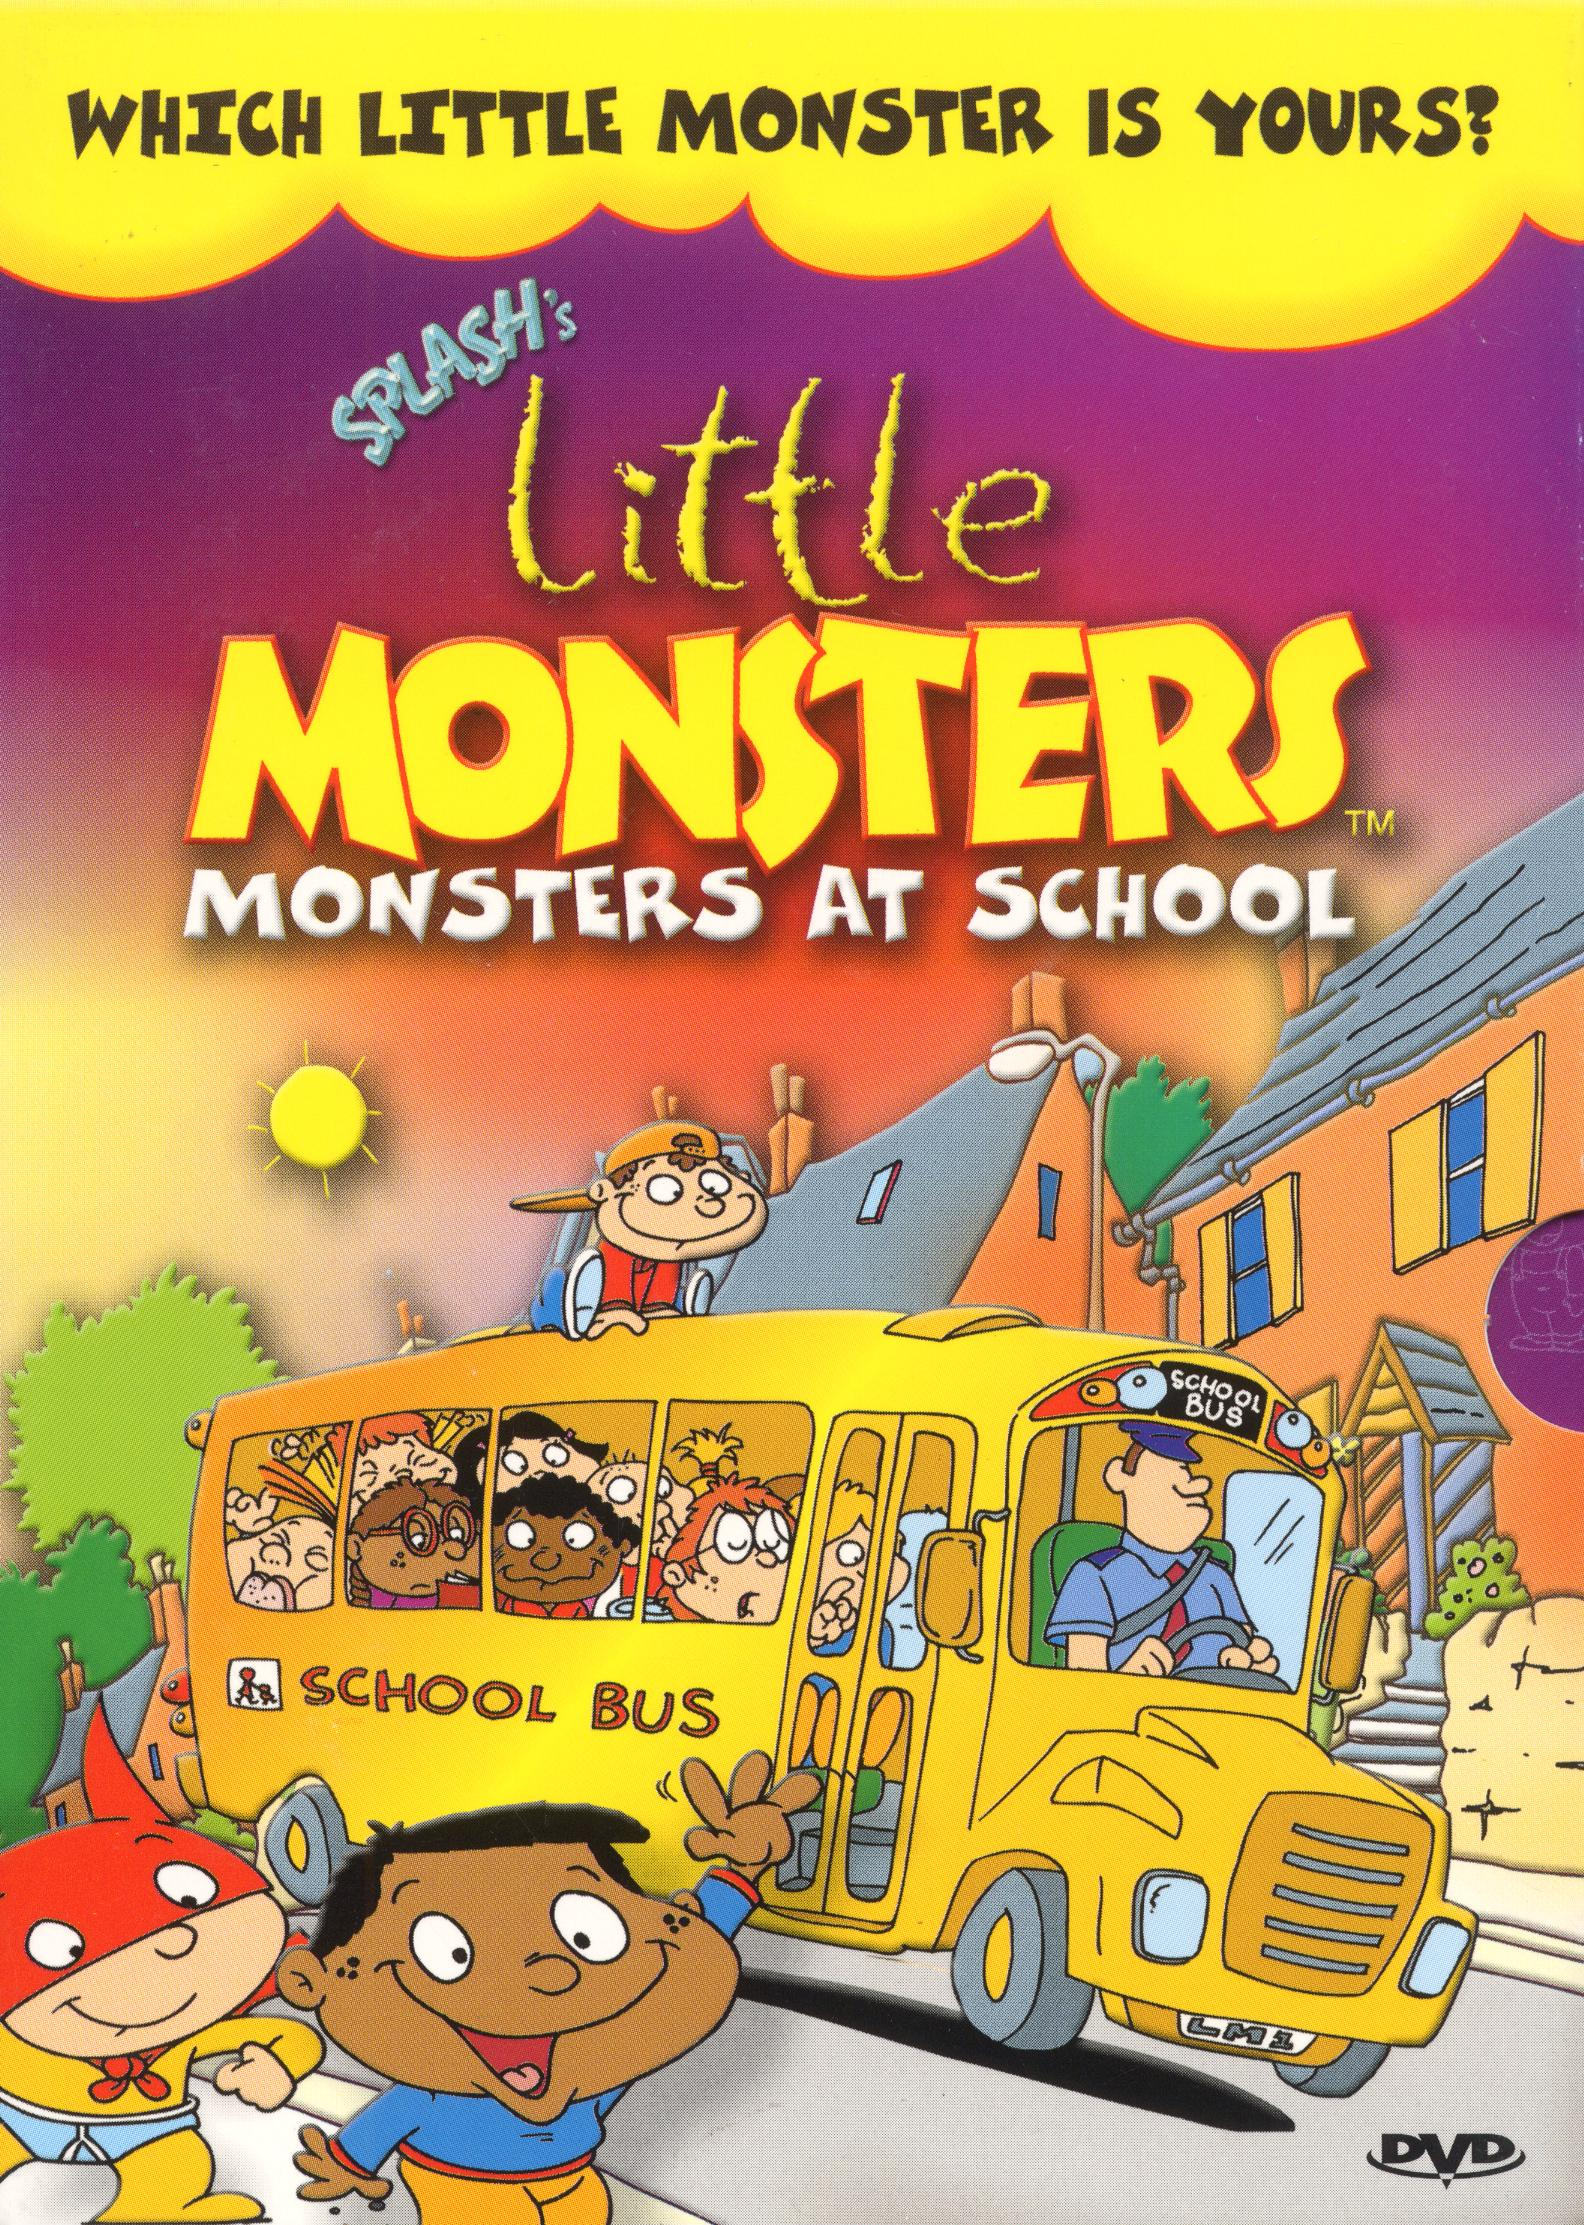 Little Monsters: Monsters at School